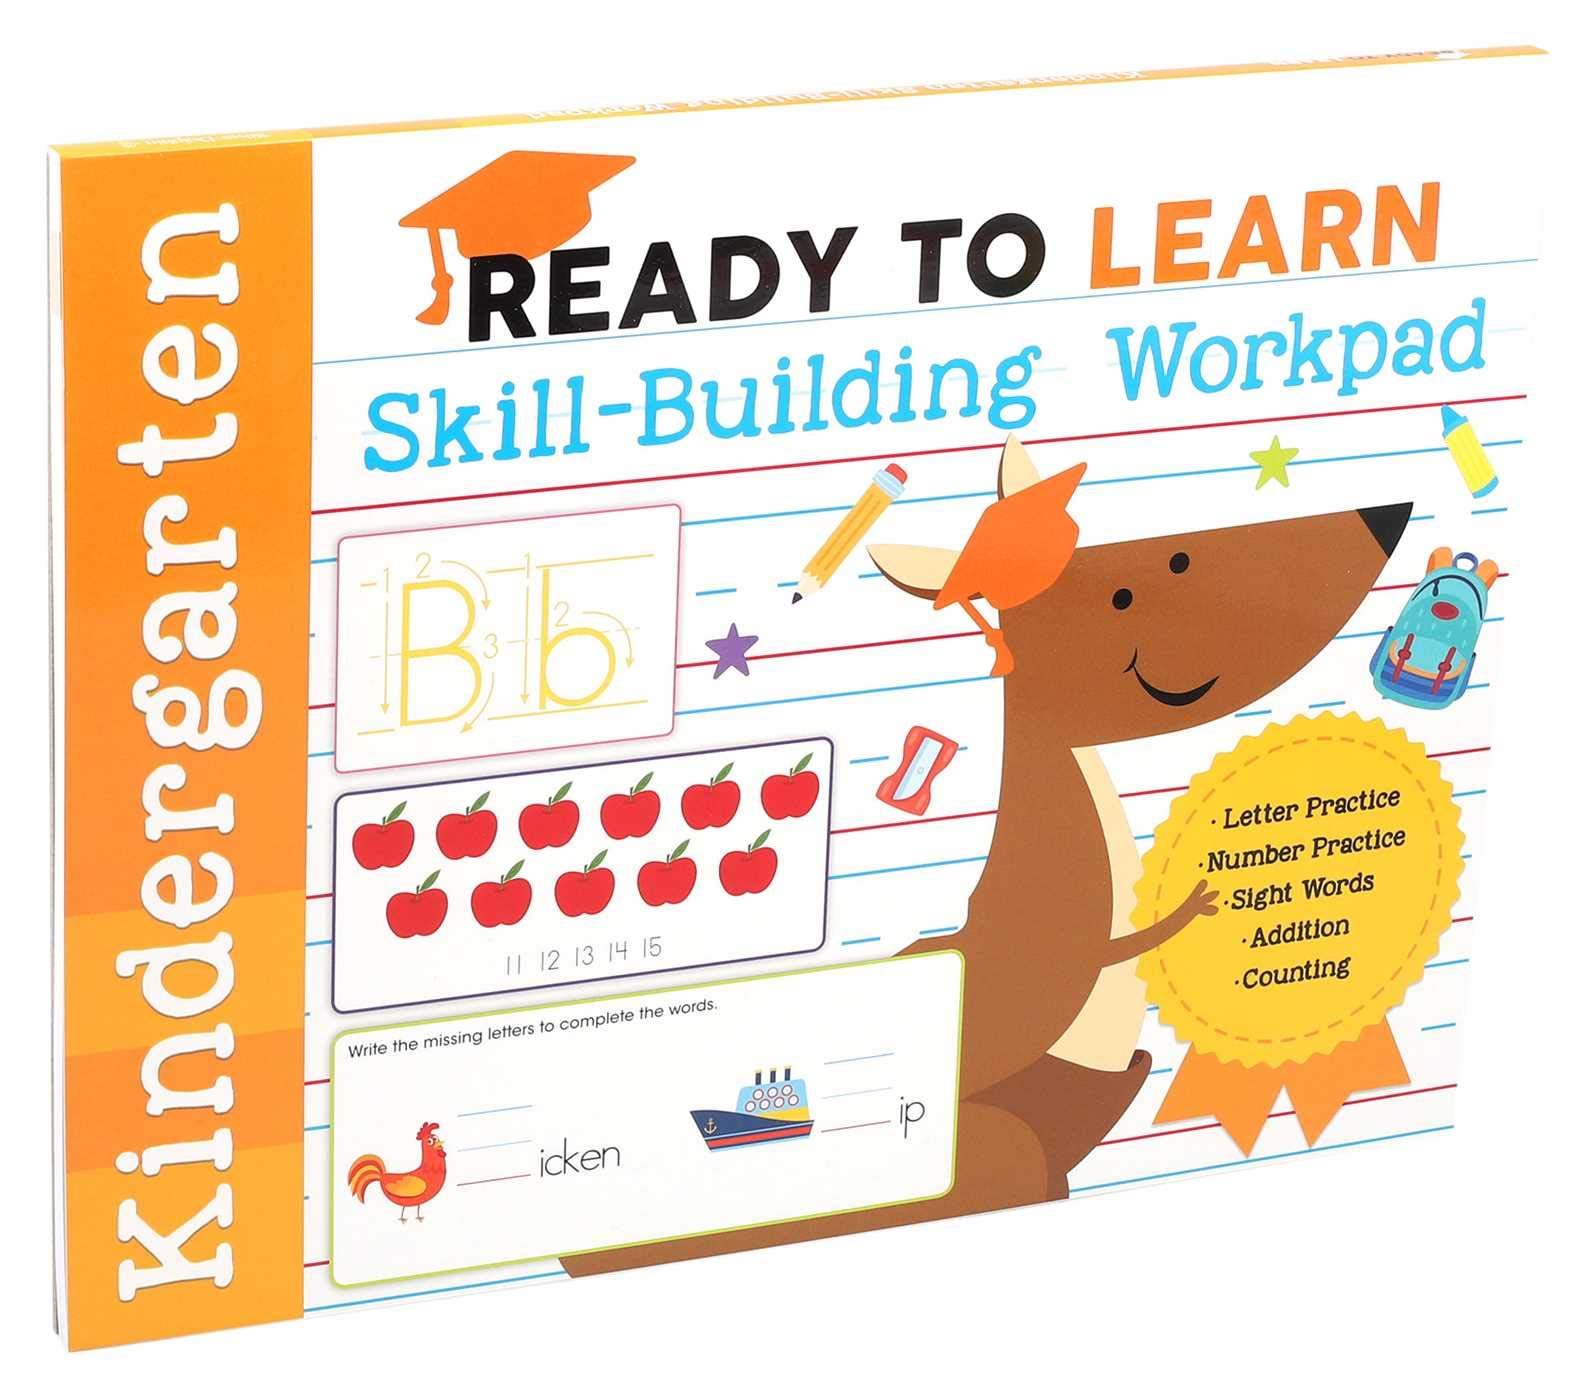 Ready To Learn Kindergarten Skill Building Workpad Letter Practice Number Practice Sight Words Addition Counting Editors Of Silver Dolphin Books 9781645173328 Amazon Com Books